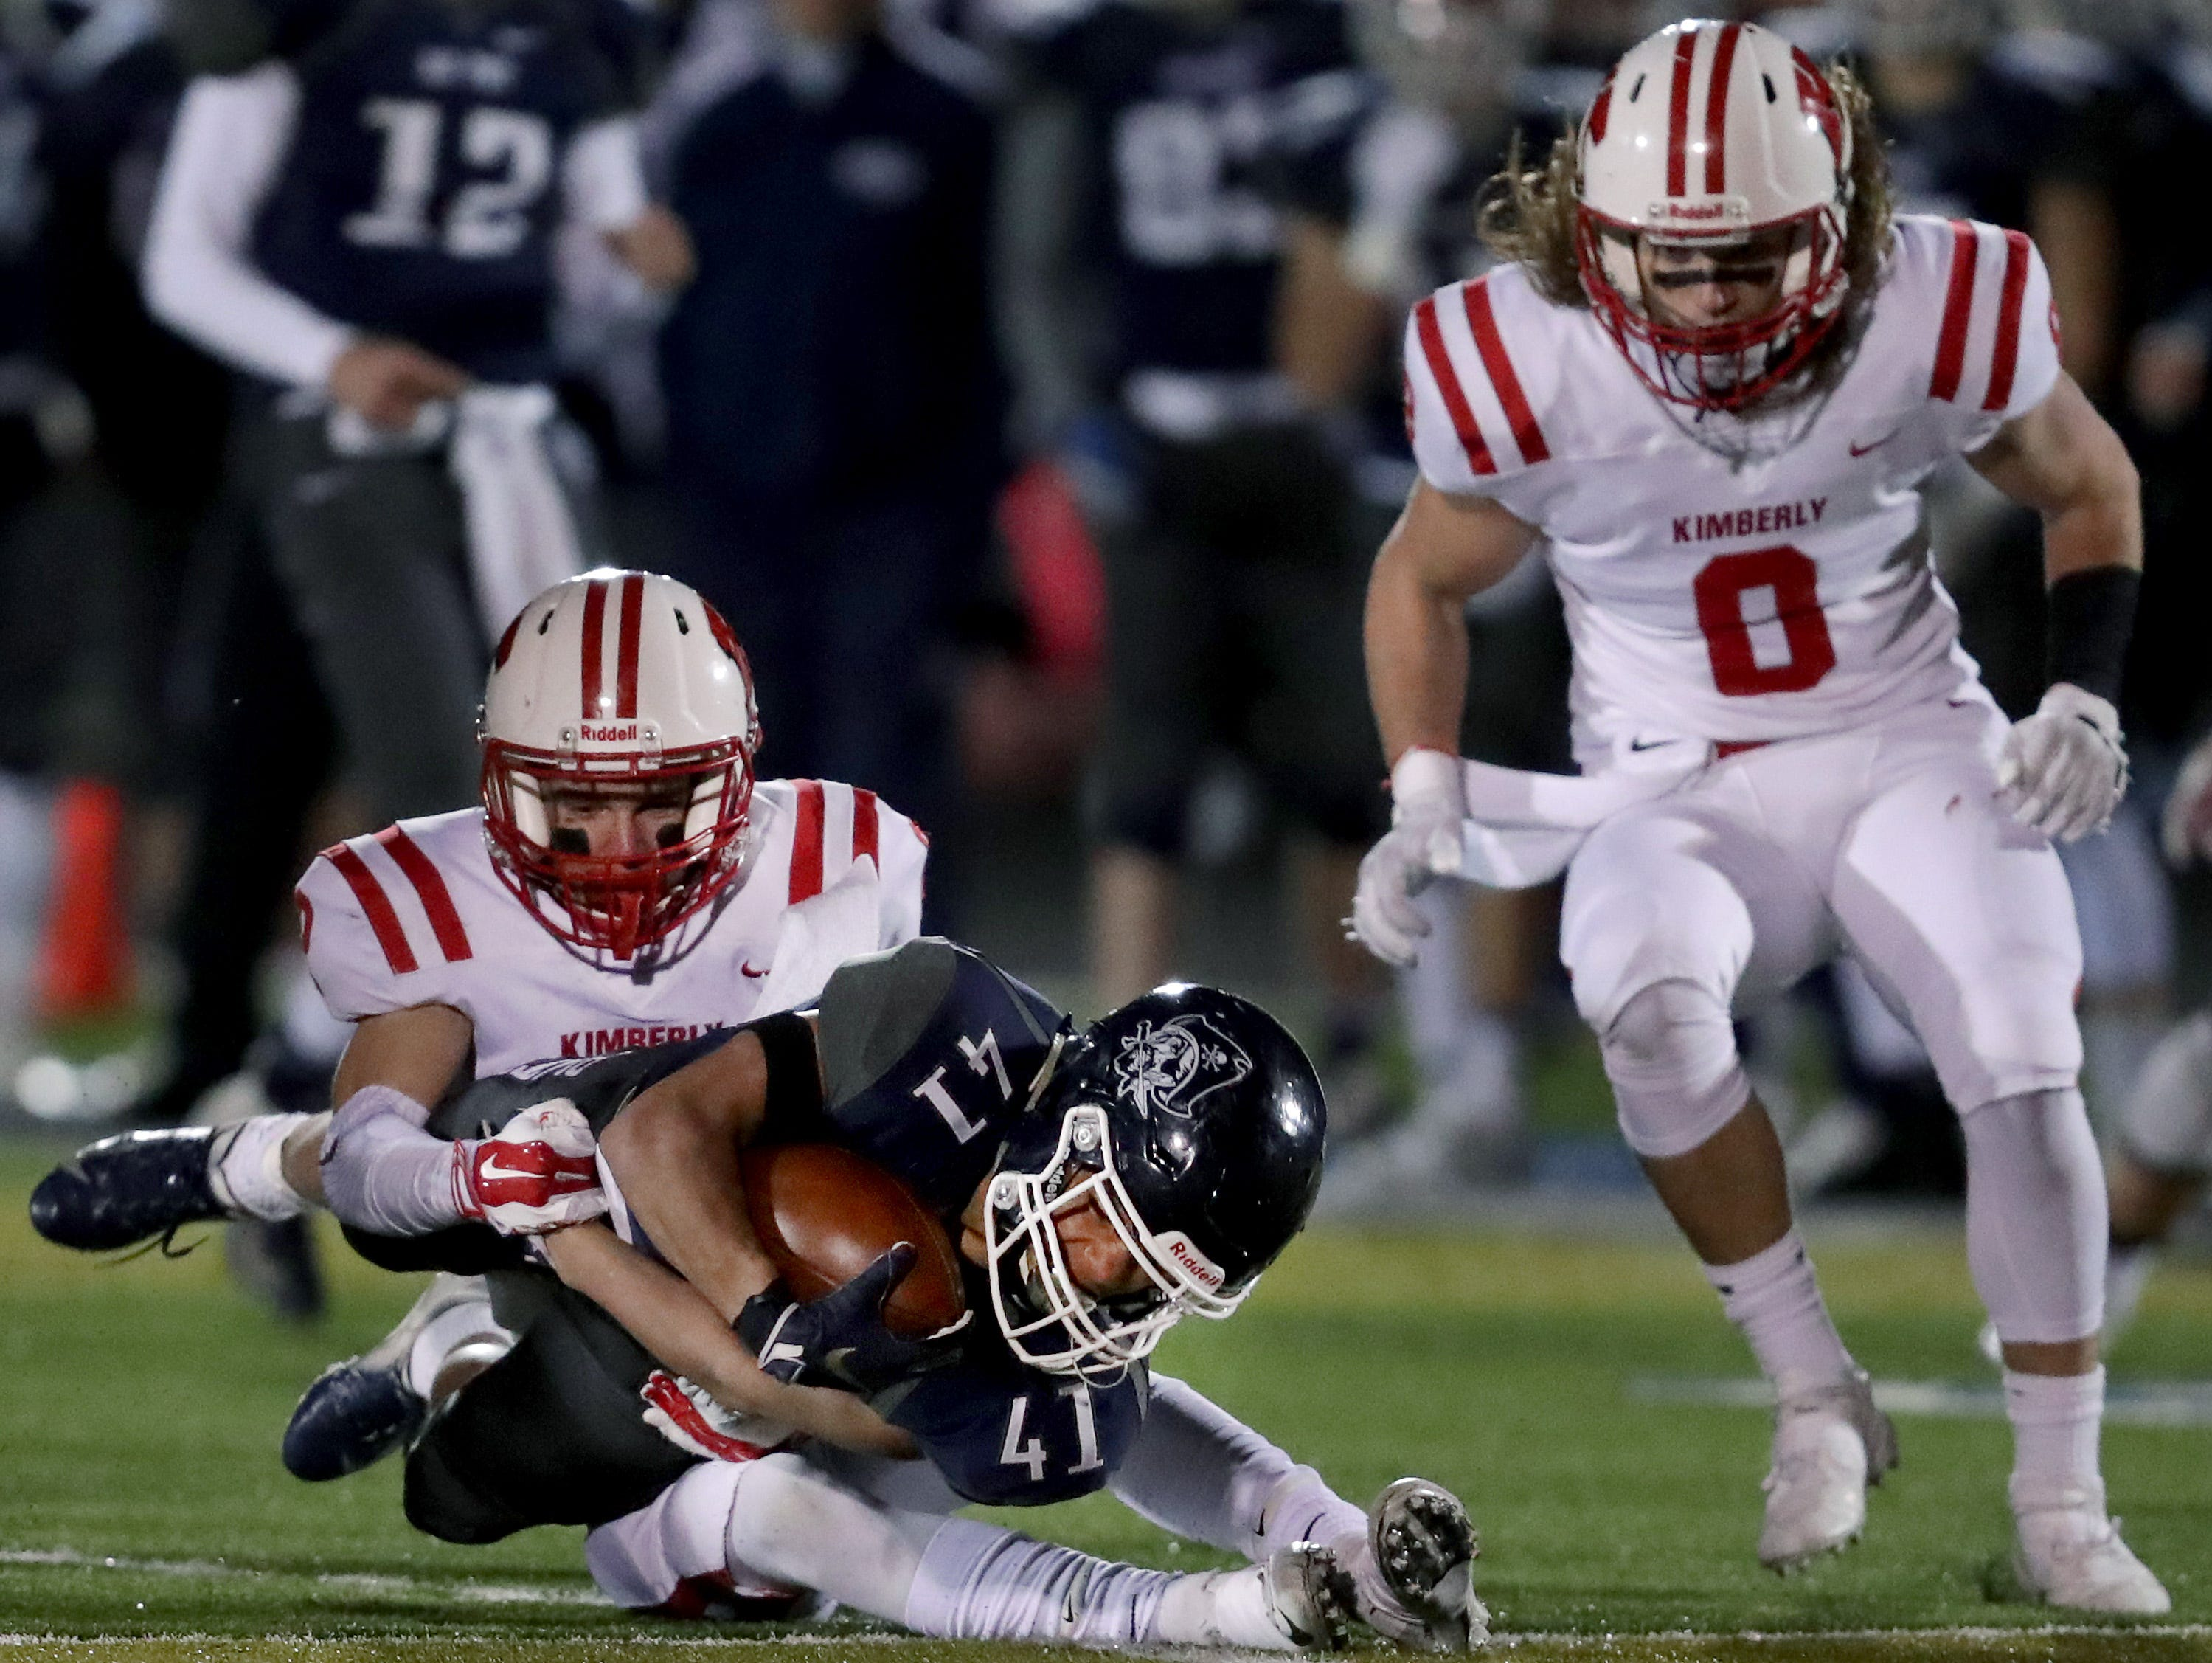 Bay Port High School's #41 Isaiah Gash against Kimberly High School's #2 Drew Lechnir and #8 Danny Kaltenbaugh during their WIAA Division 1 state quarterfinal football game on Friday, November 2, 2018, in Suamico, Wis.  Kimberly defeated Bay Port 38 to 20. Wm. Glasheen/USA TODAY NETWORK-Wisconsin.